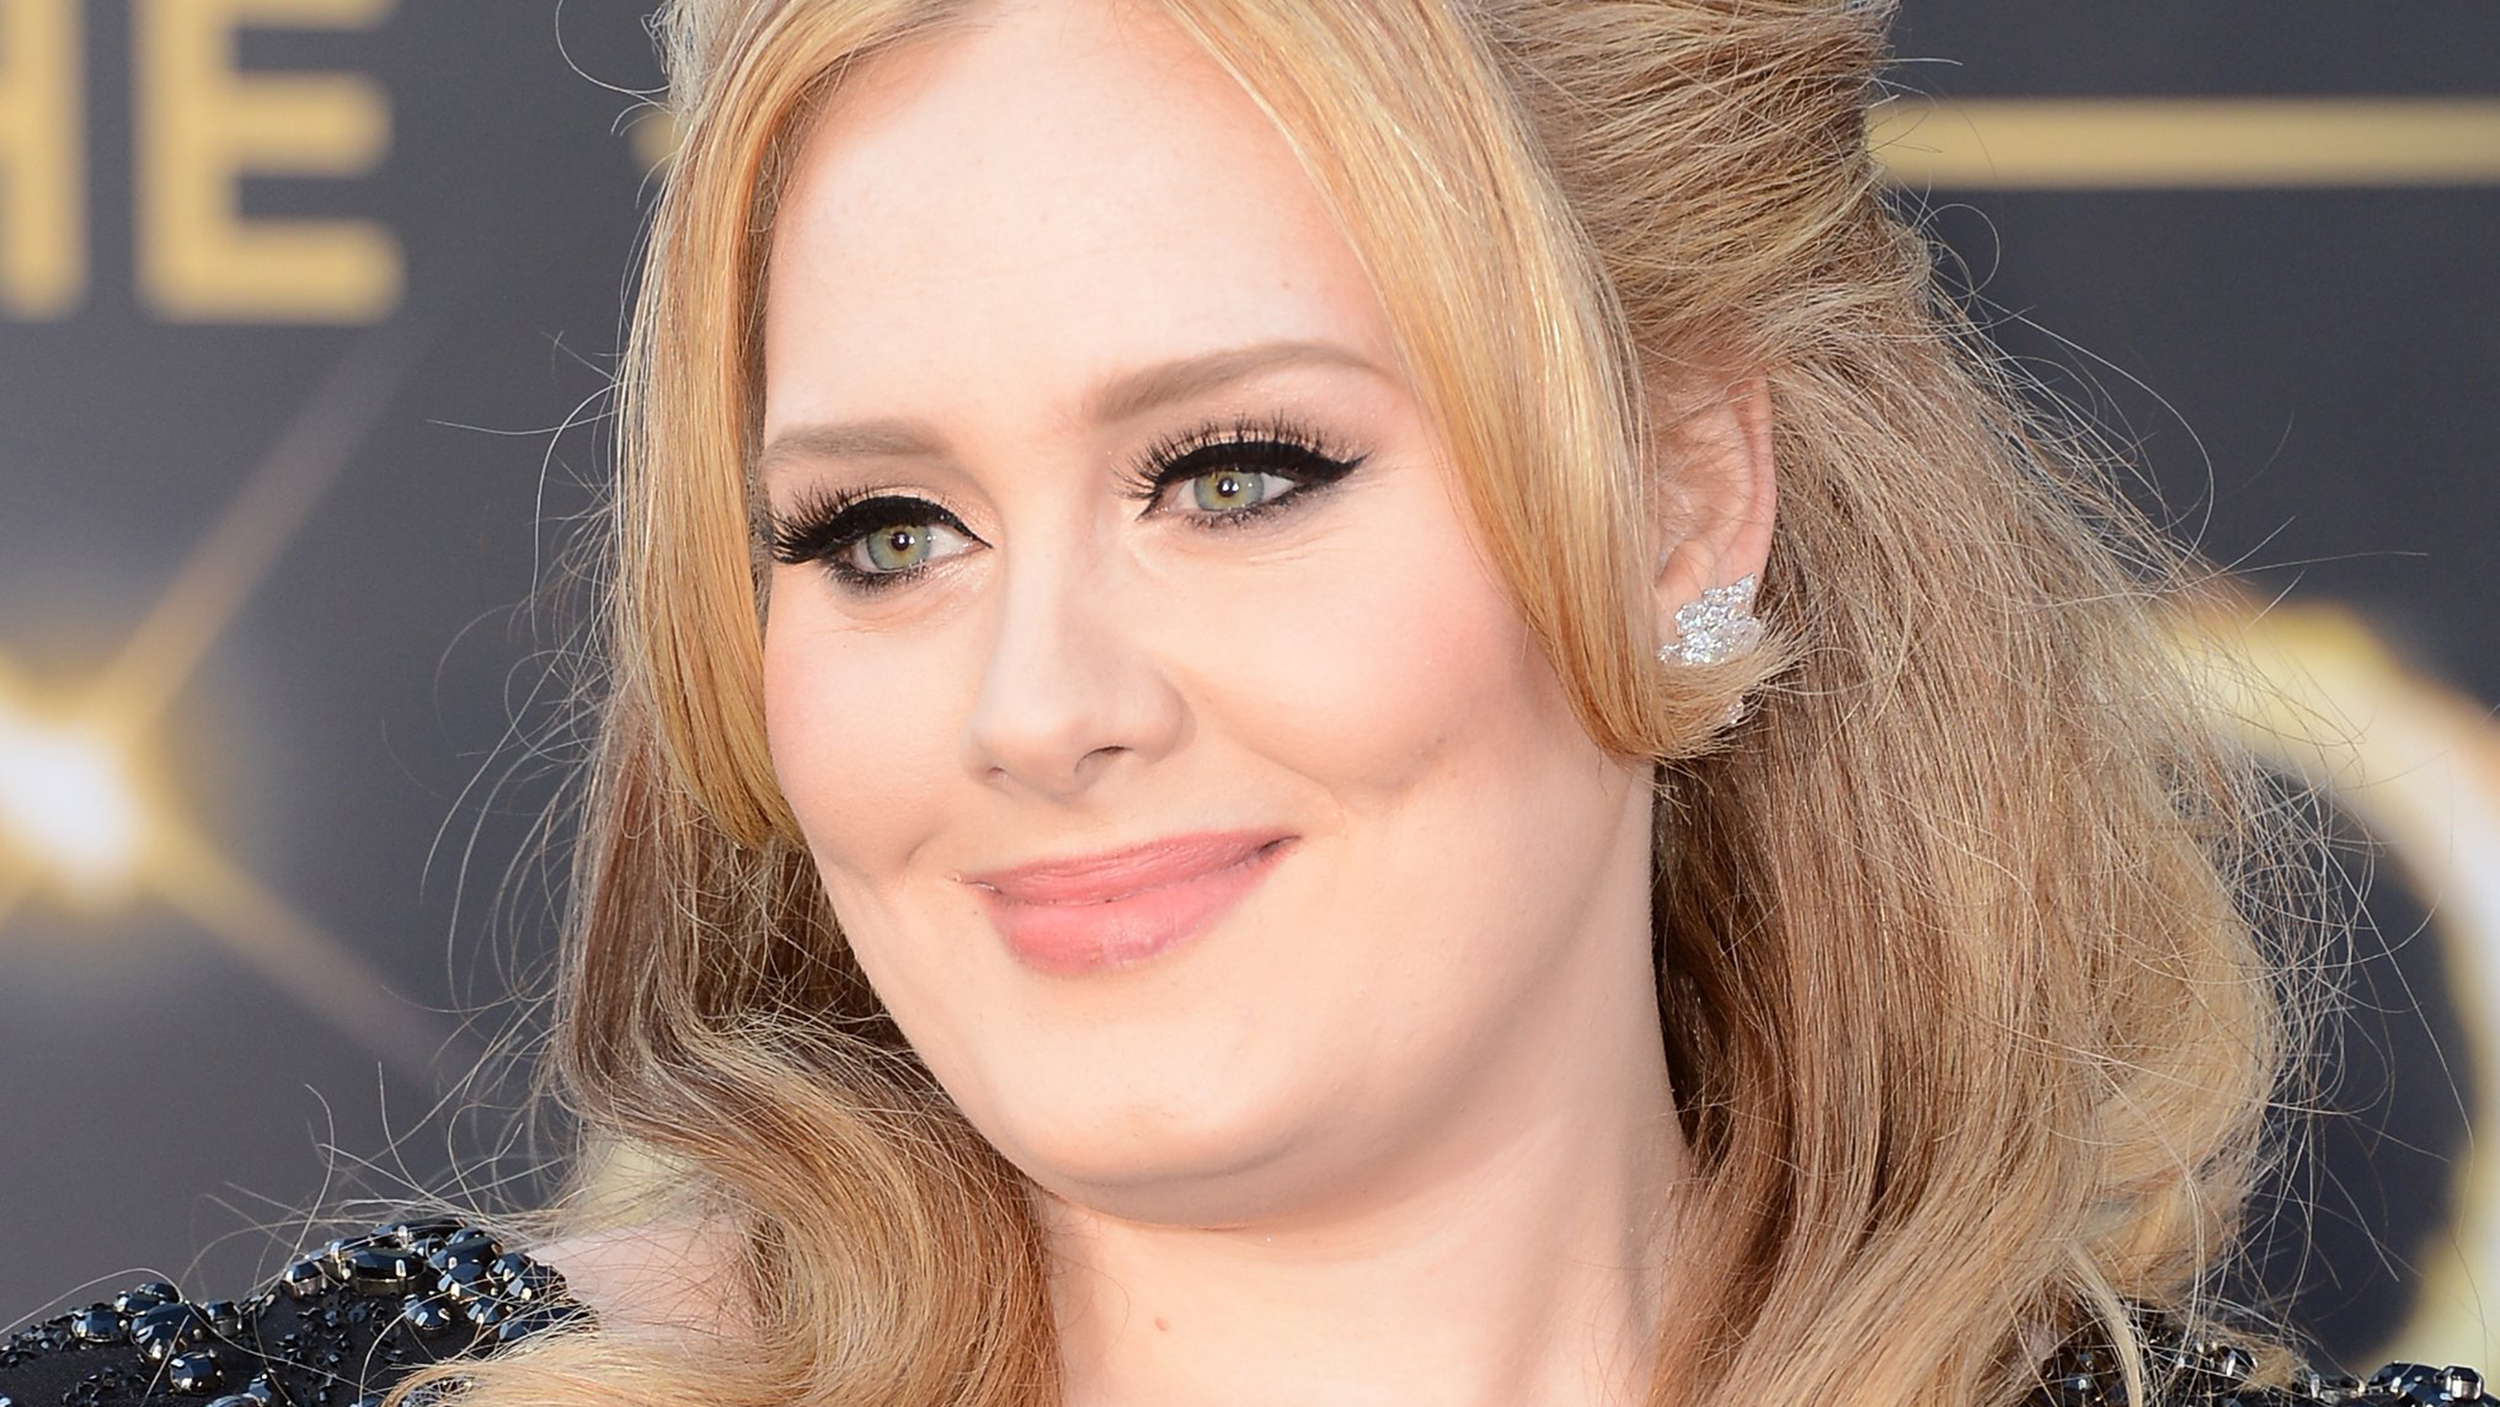 Adele Returns, Greets Fans With New Song 'Hello'